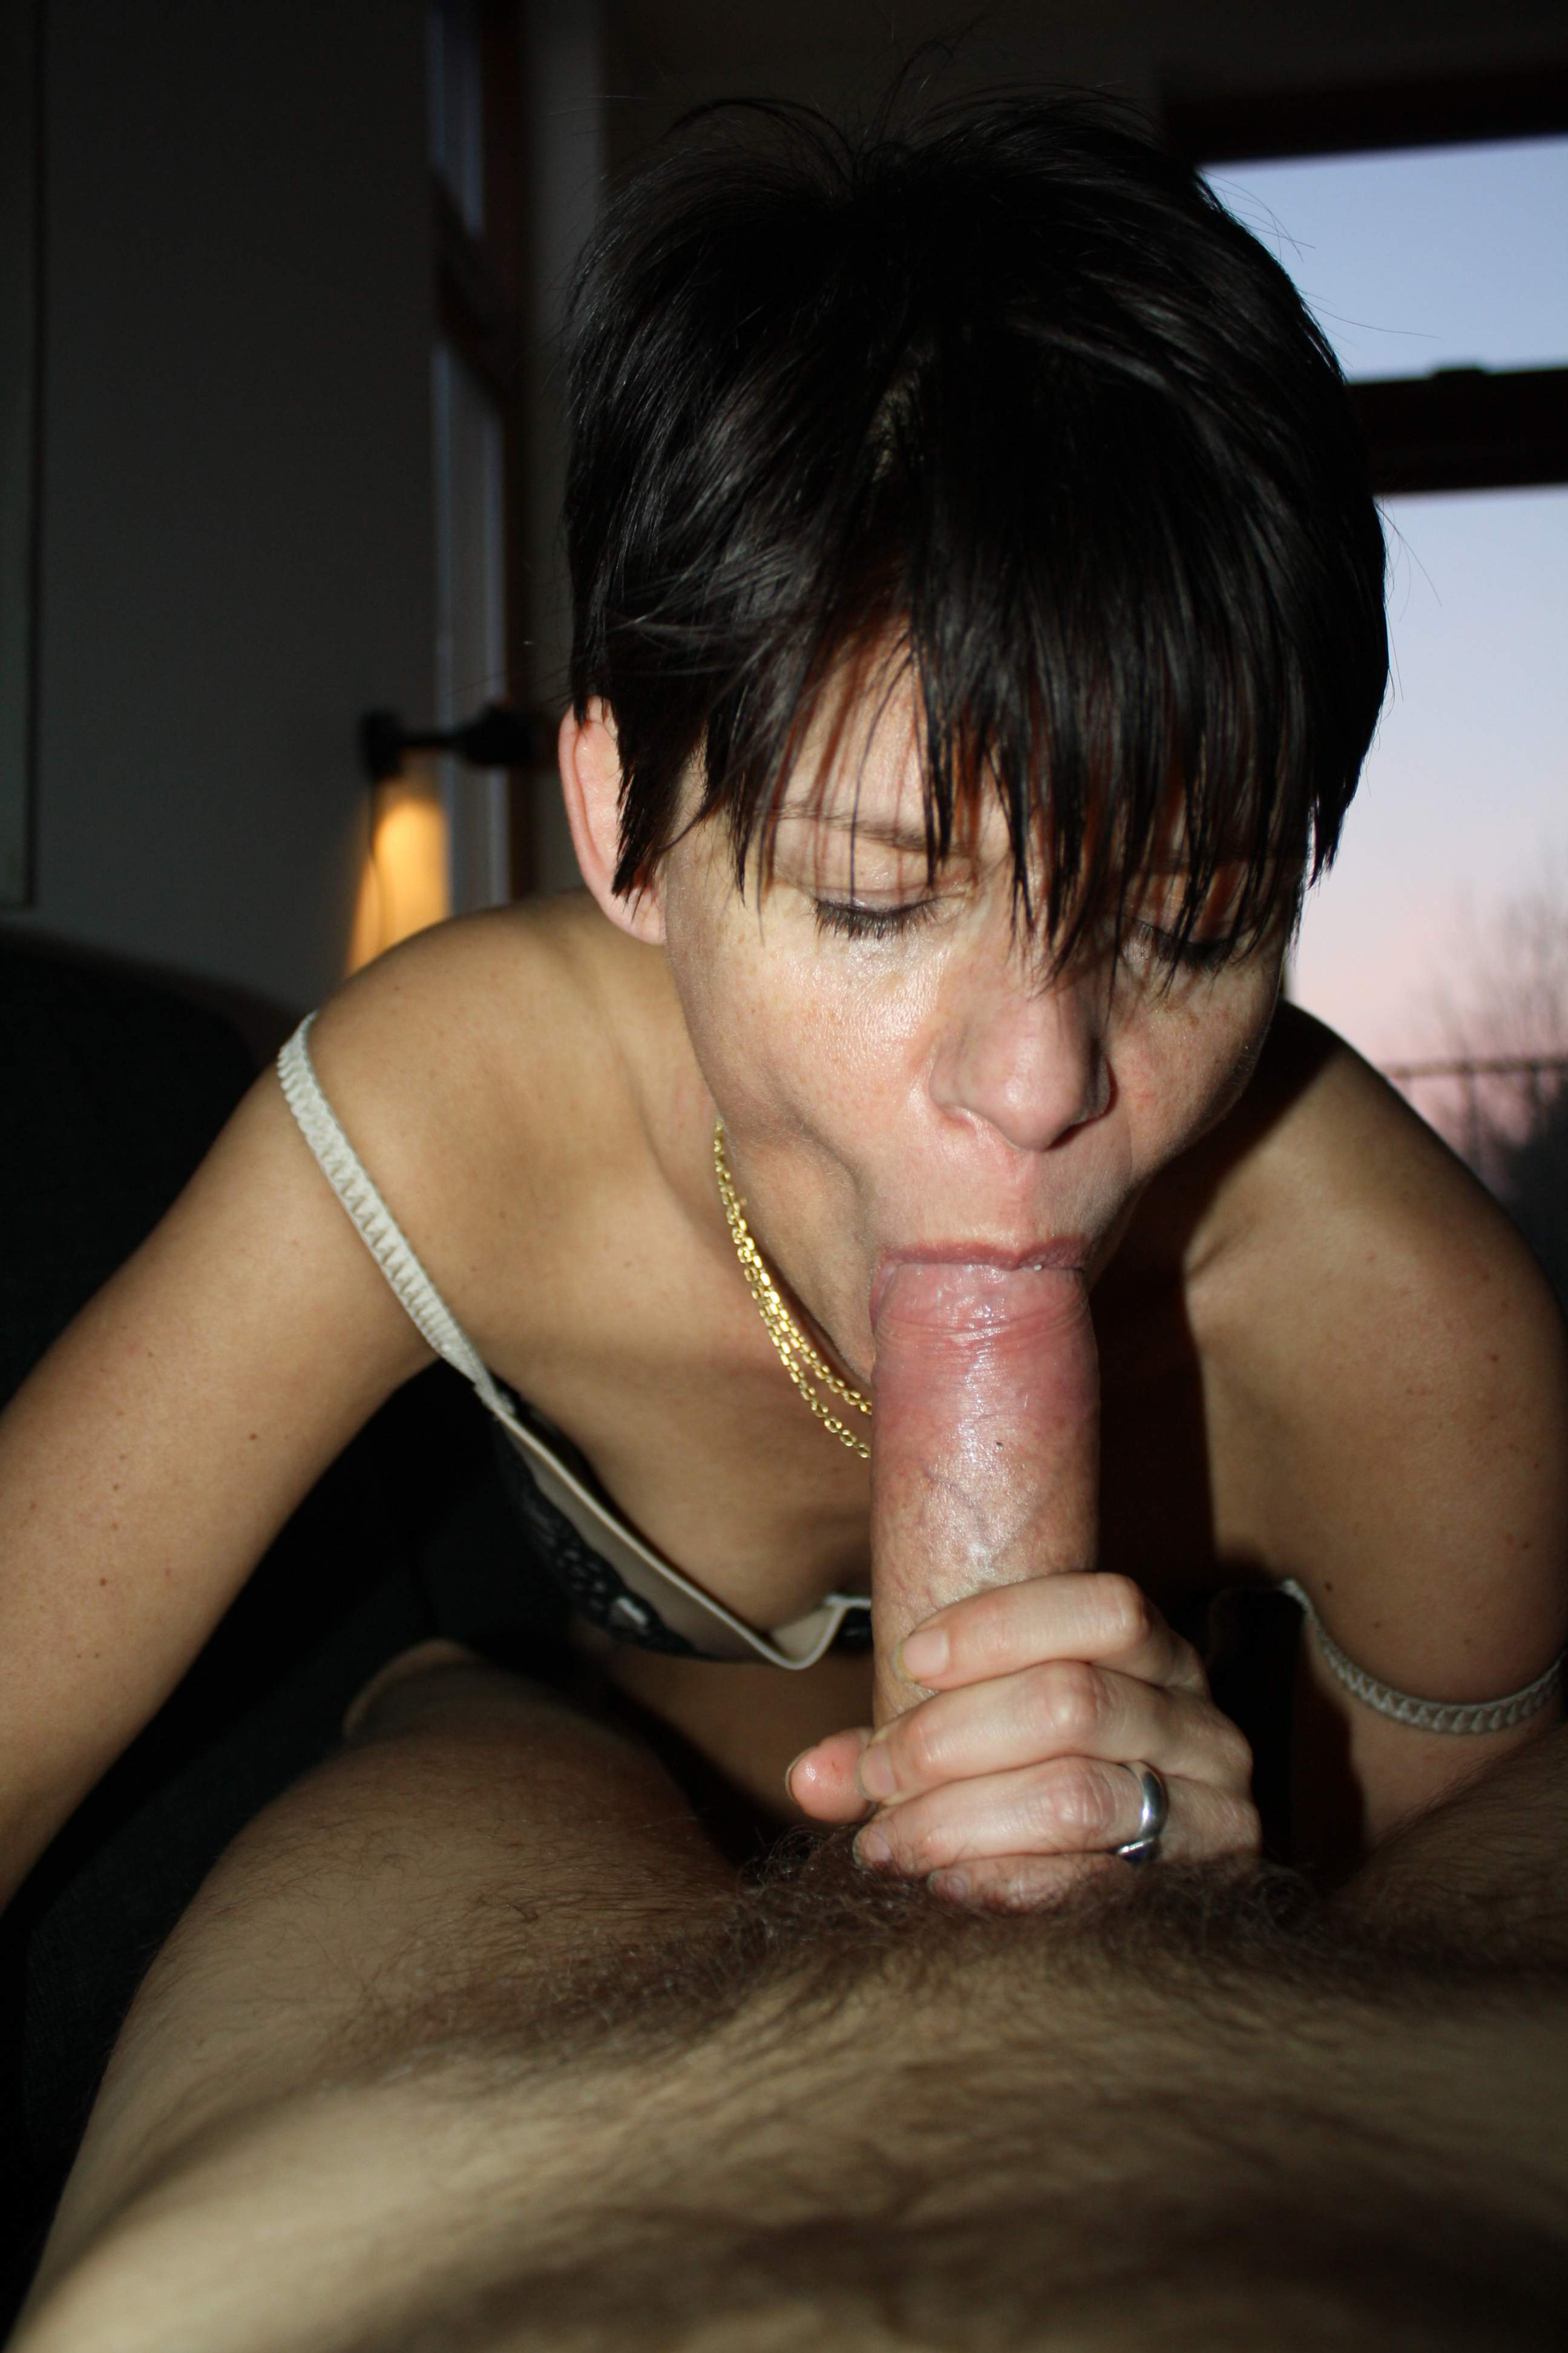 Wife and stranger in public nude